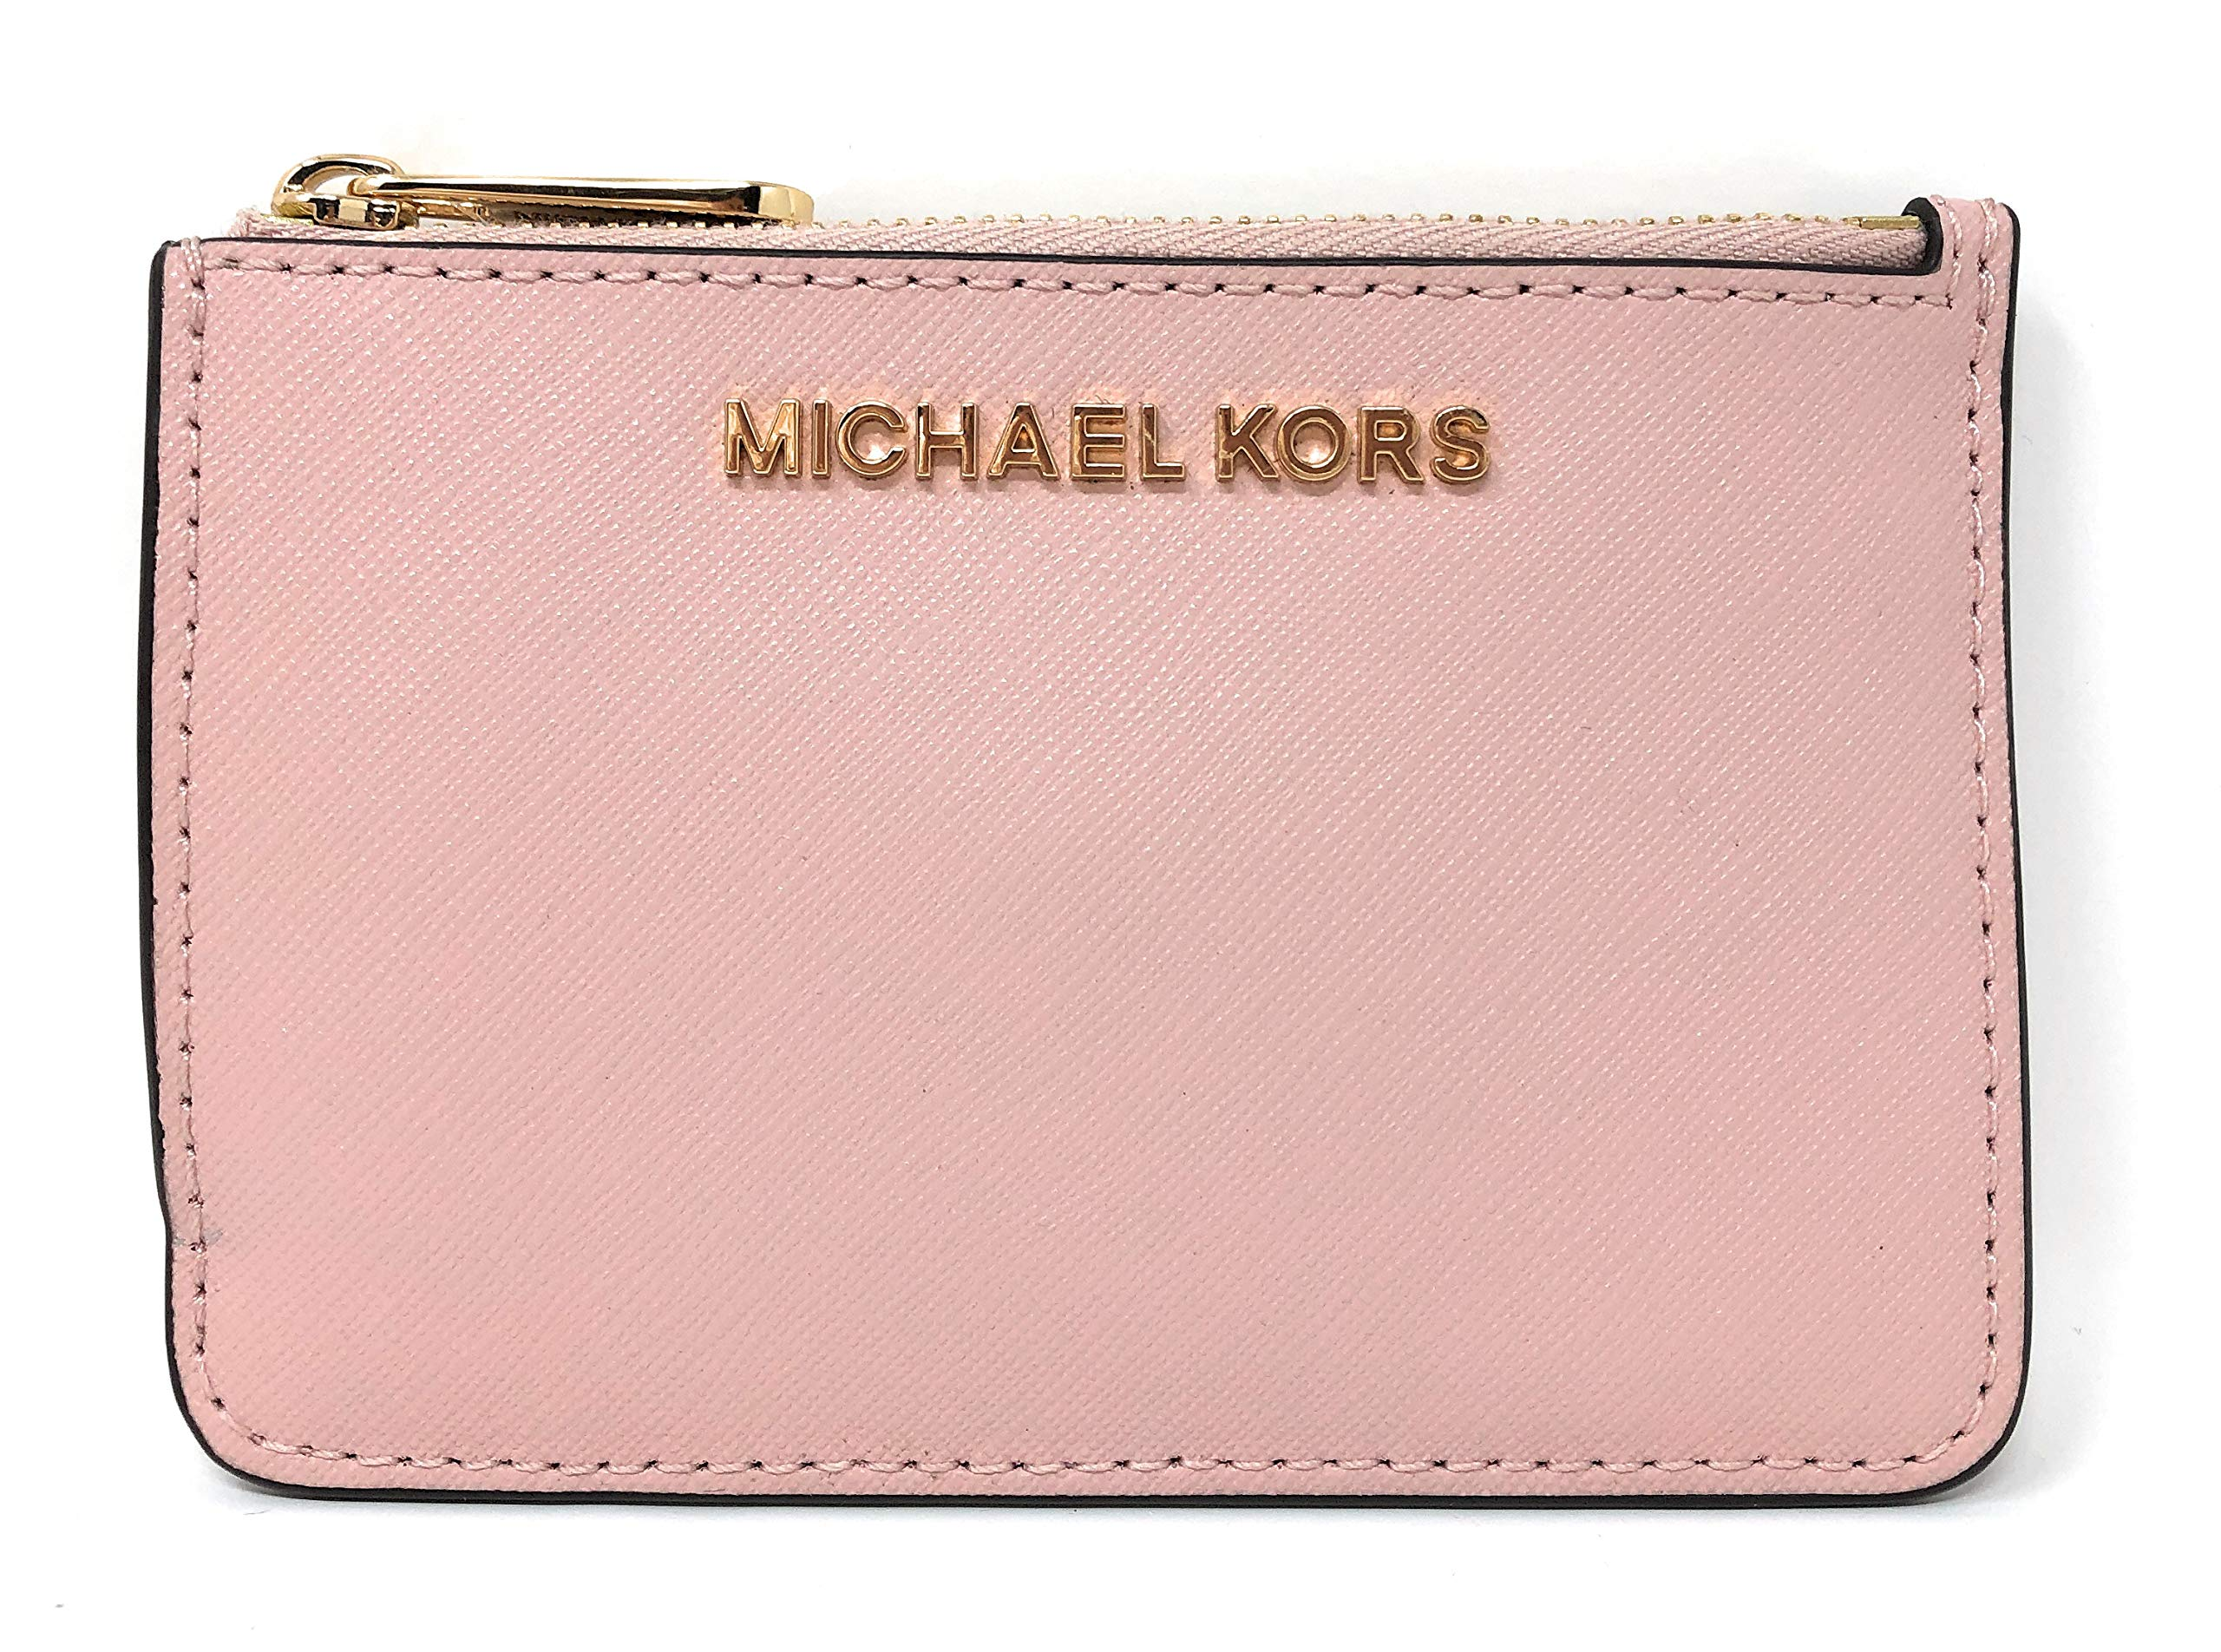 Michael Kors Jet Set Travel Small Top Zip Leather Coin Pouch ID Card Case Wallet In Blossom by Michael Kors